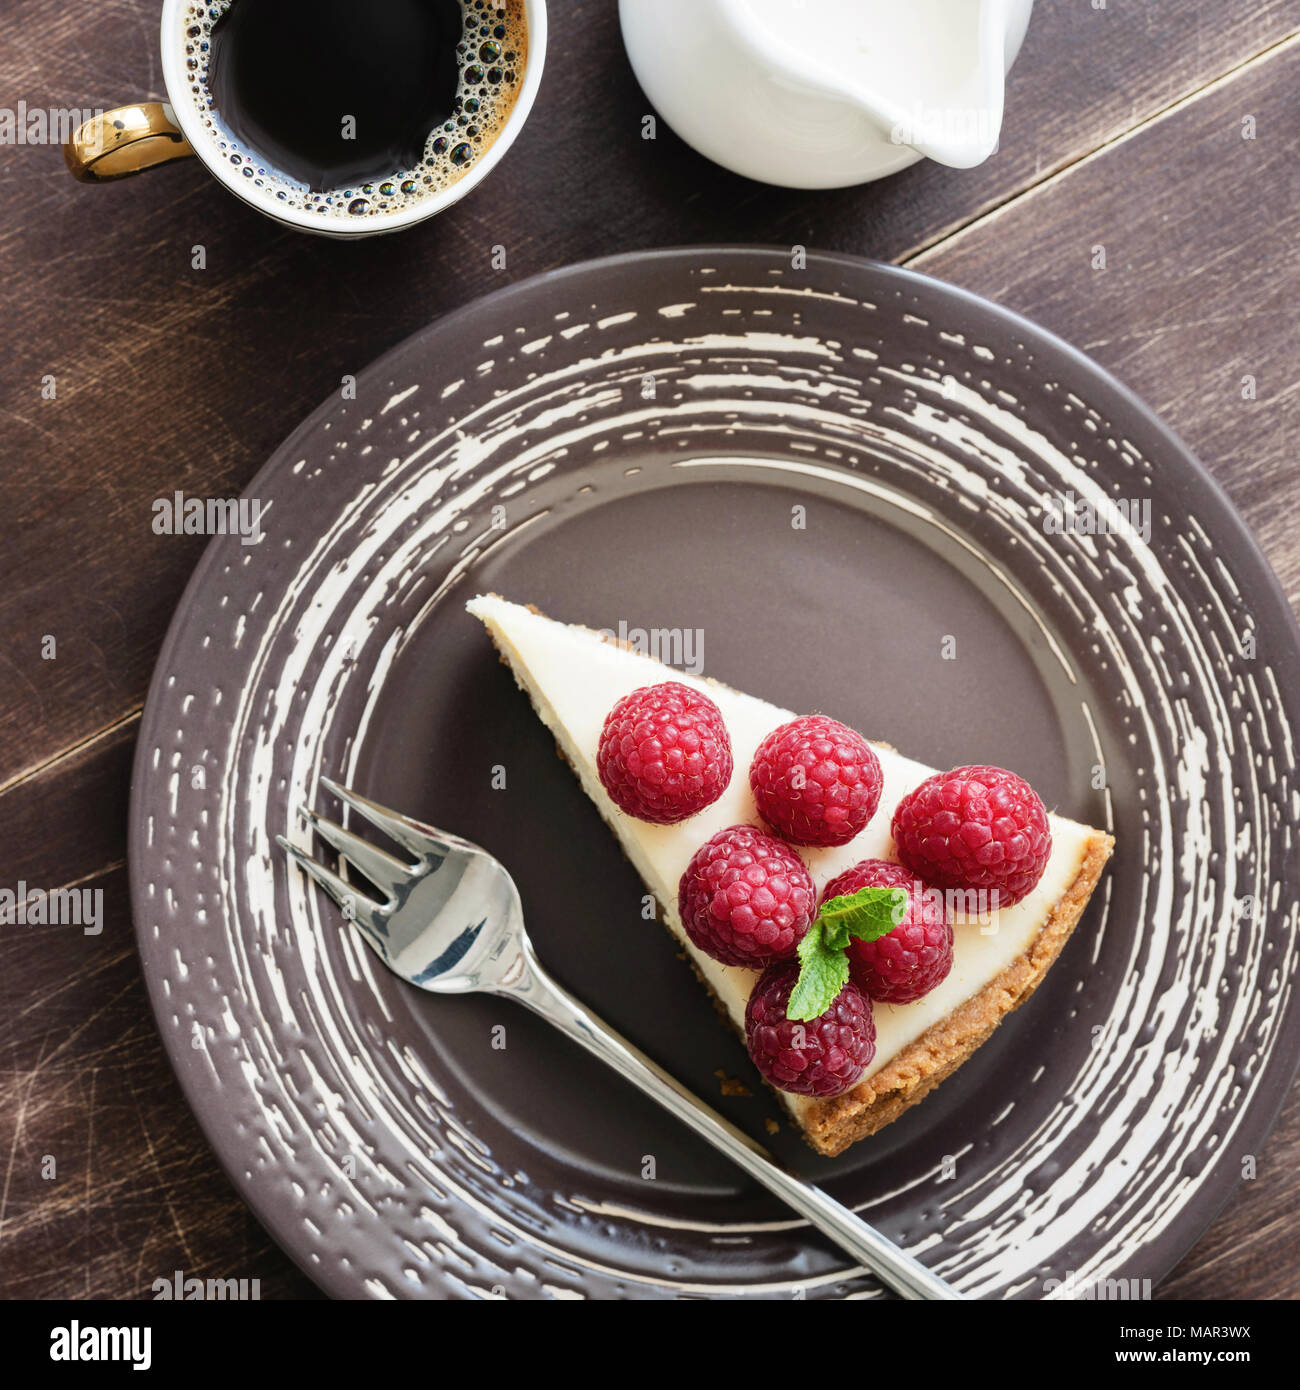 Cheesecake with raspberries, coffee and cream. Top view, square crop - Stock Image